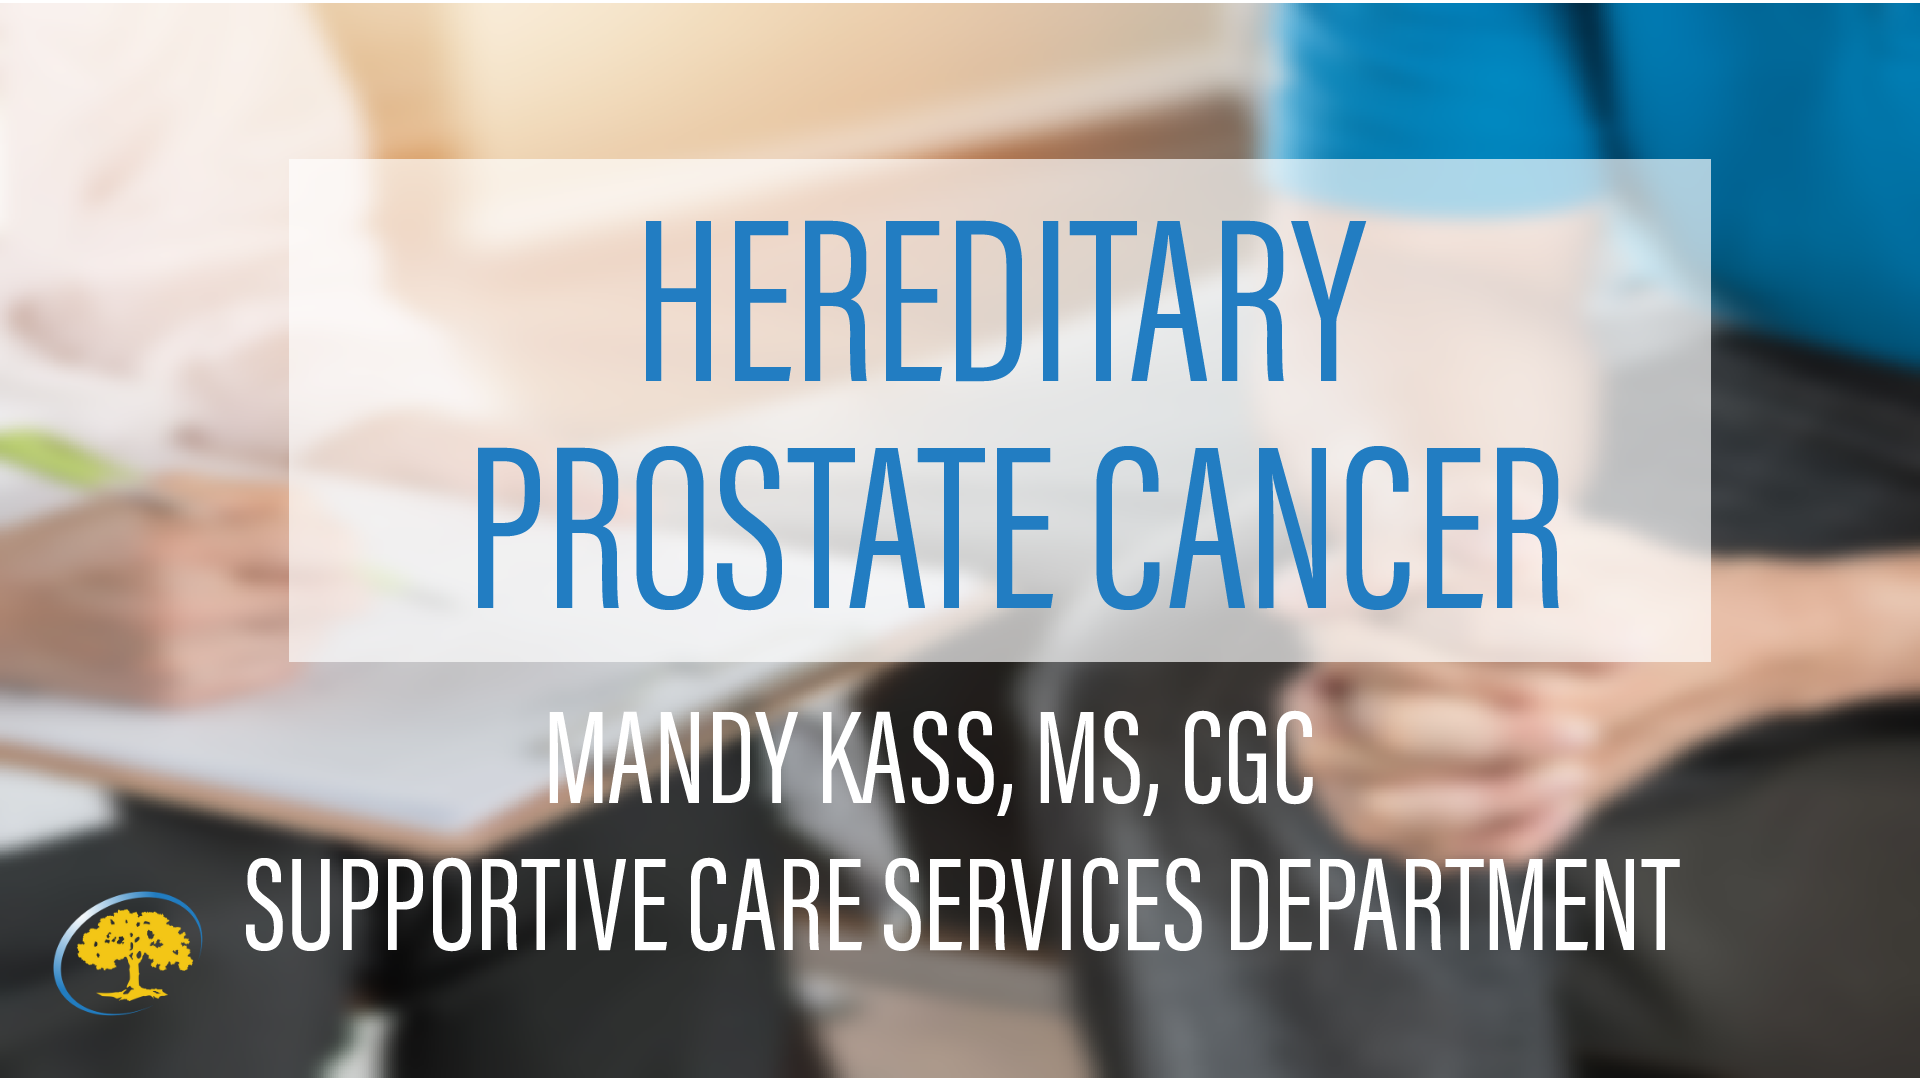 Hereditary Prostate Cancer